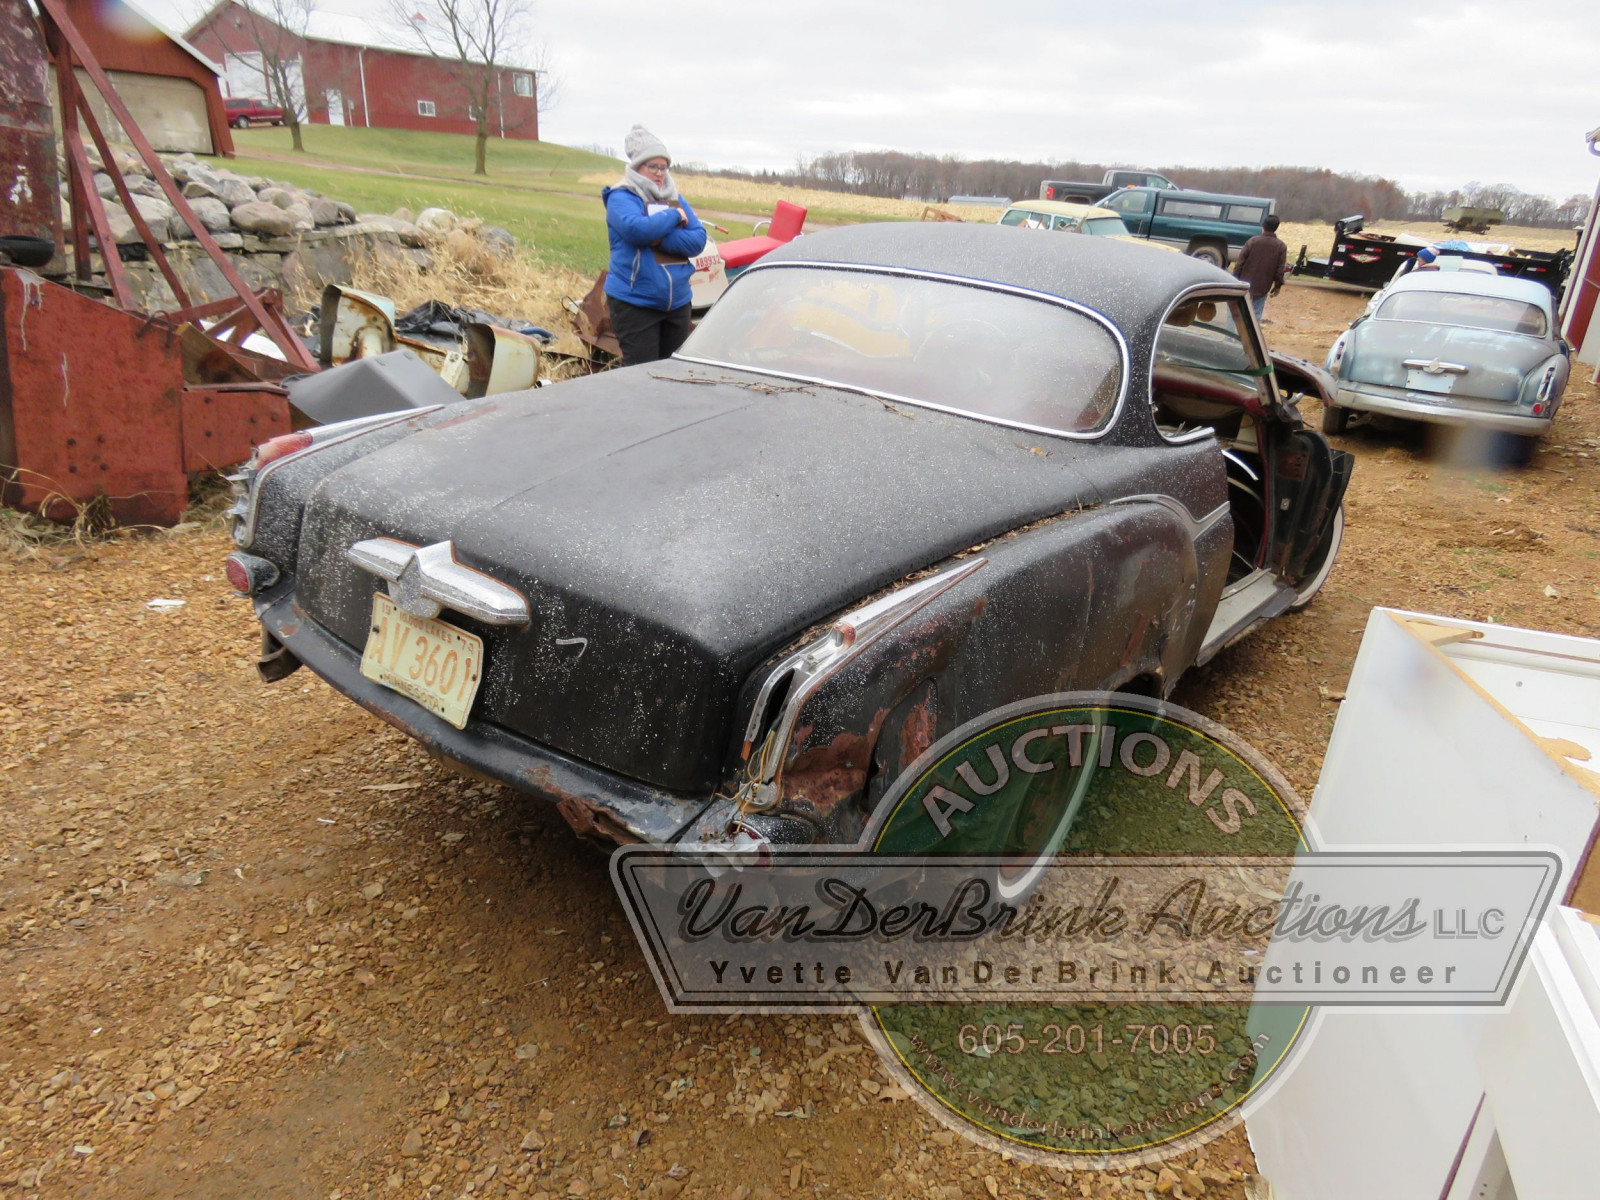 Borgward Coupe for project or parts - Image 9